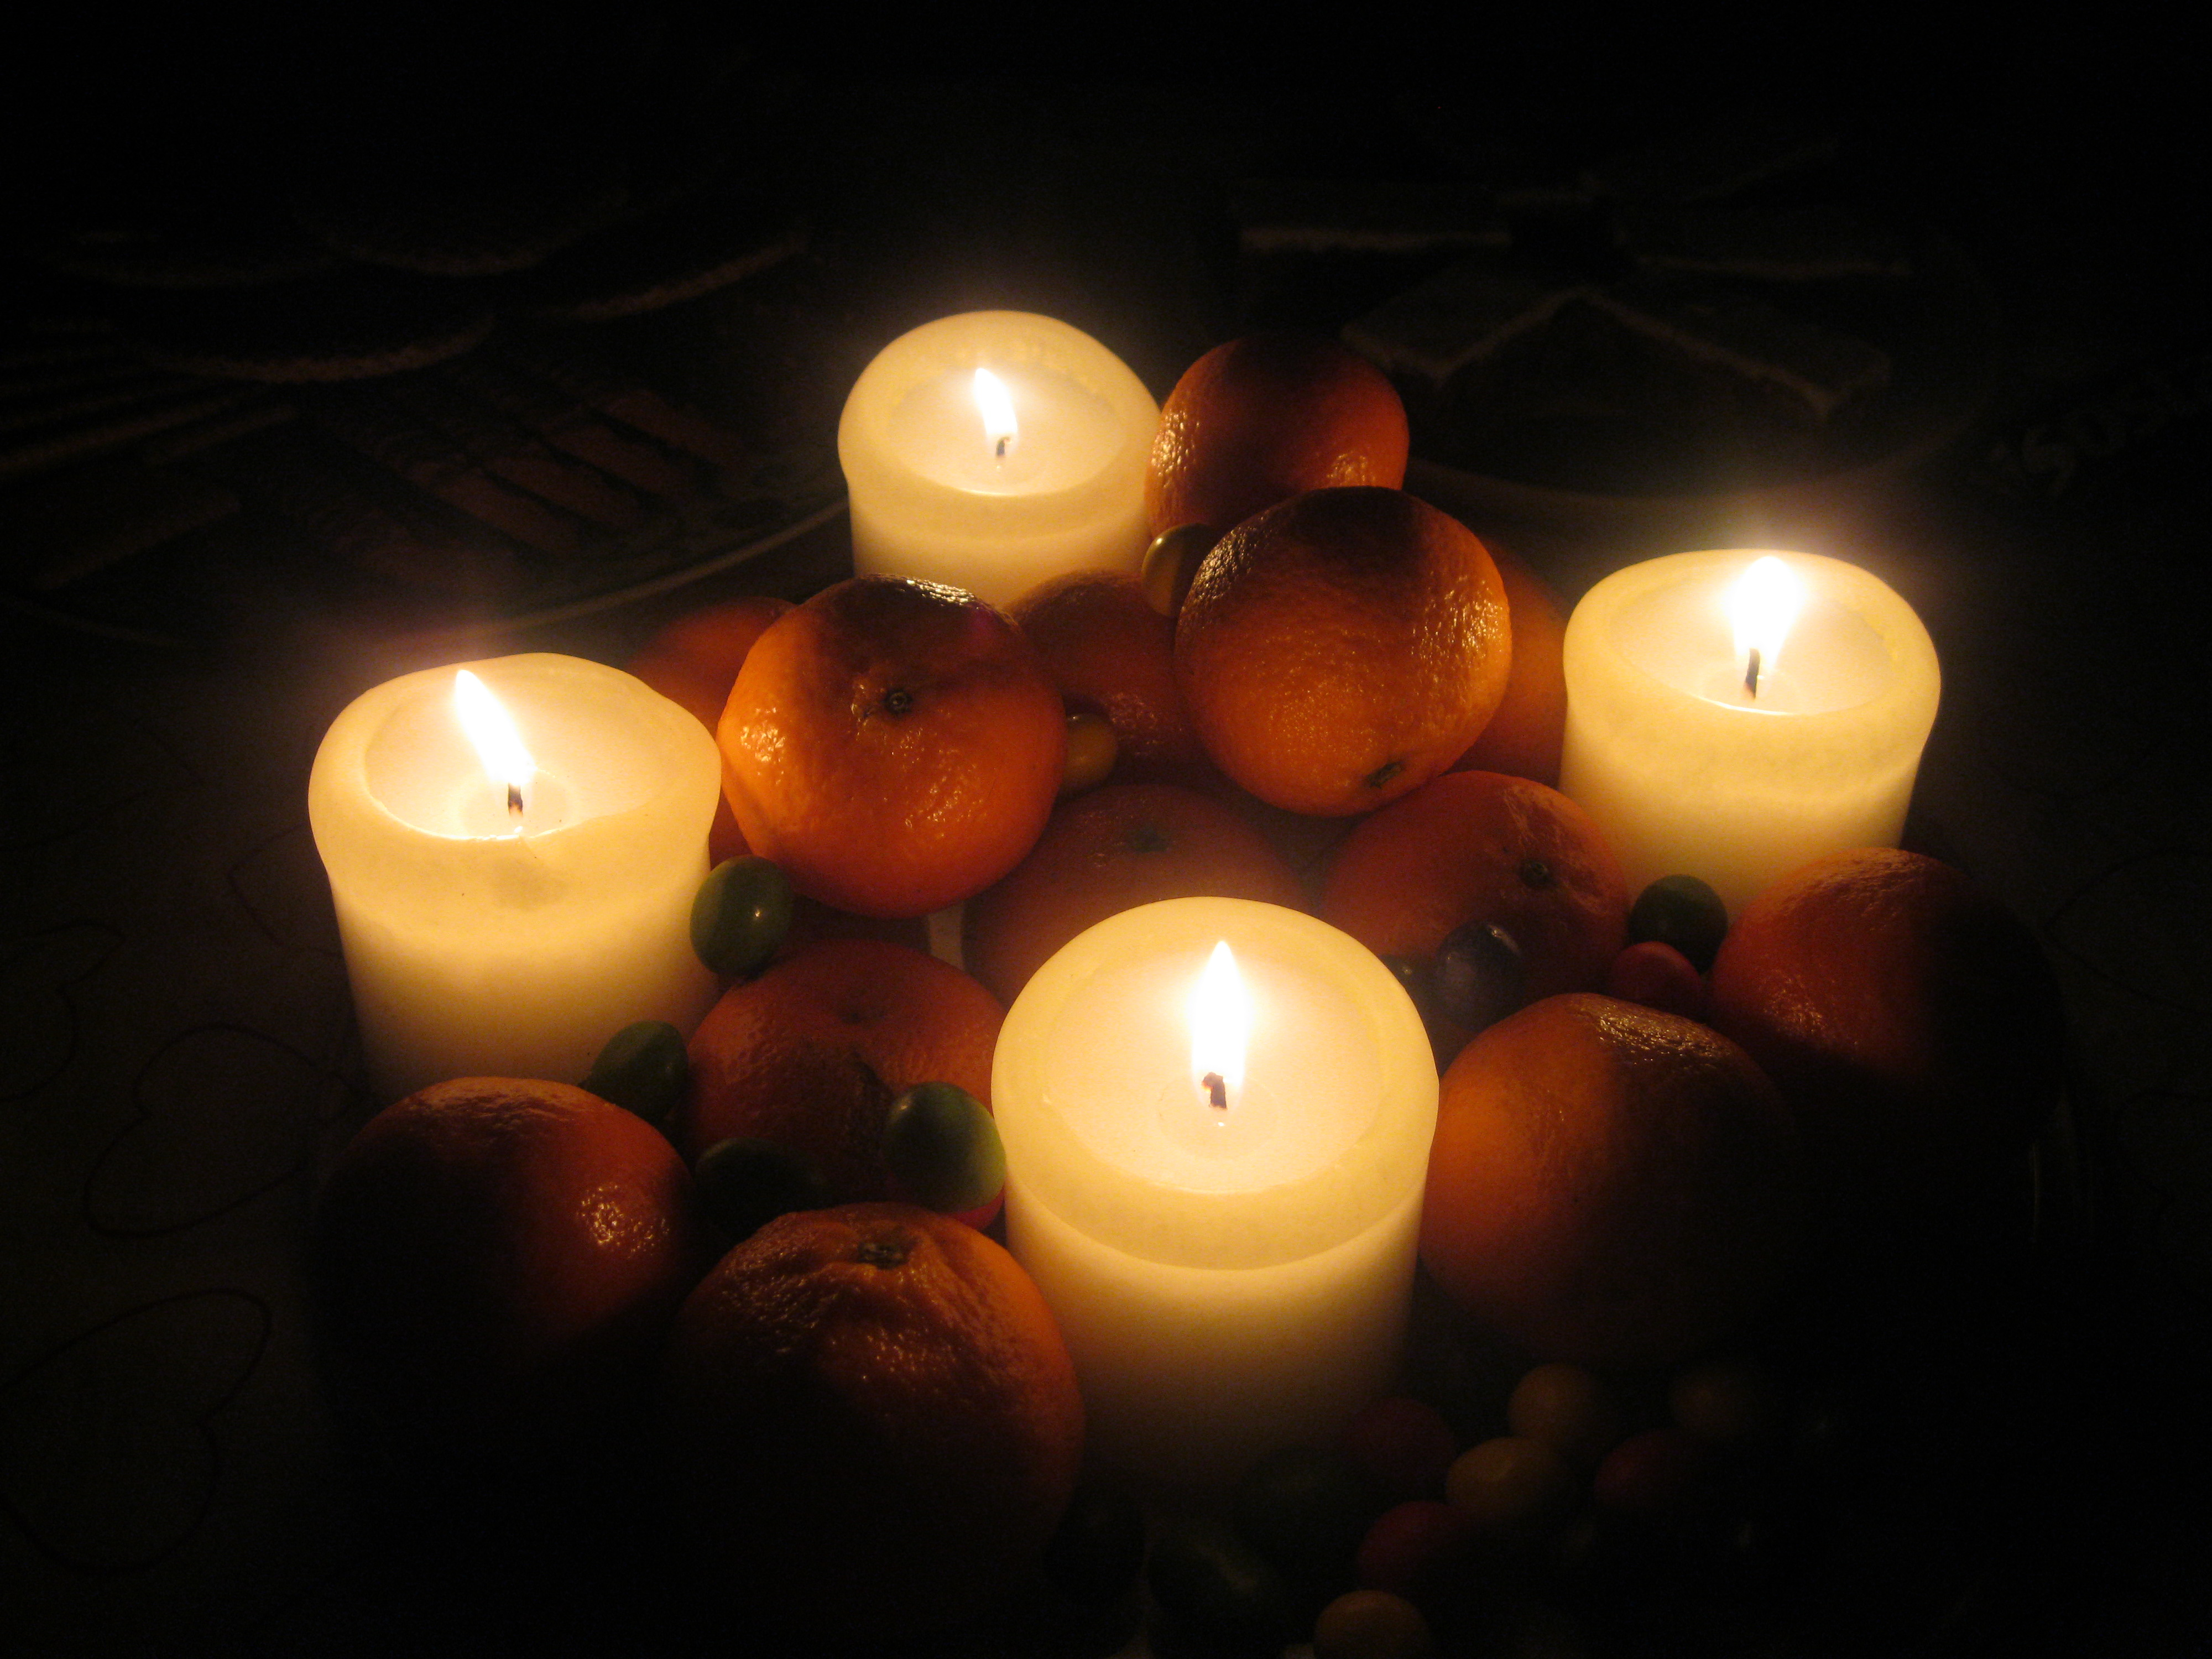 When setting up a magical altar or sacred space, keep in mind that oranges lend themselves to ancestral magic and represent reincarnation and immortality as well.  They attract abundance and good fortune, and are also associated with youthfulness. -- Orange Metaphysical Properties